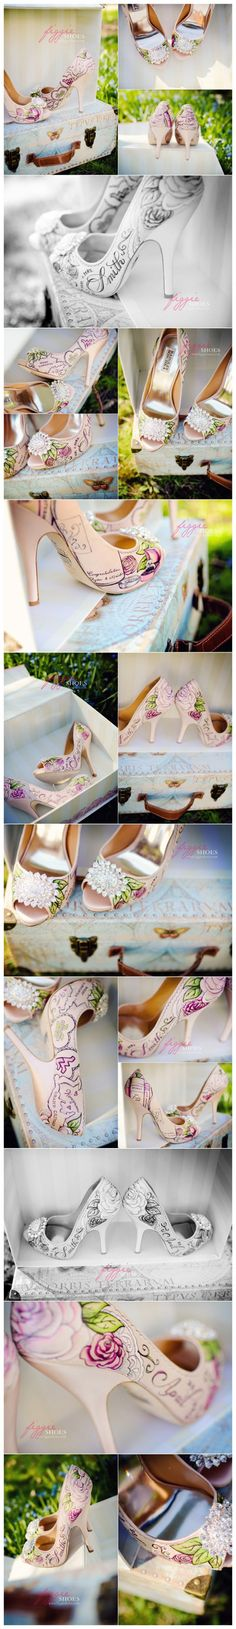 Wow.  I wish more brides wore shoes like this. Love this idea!